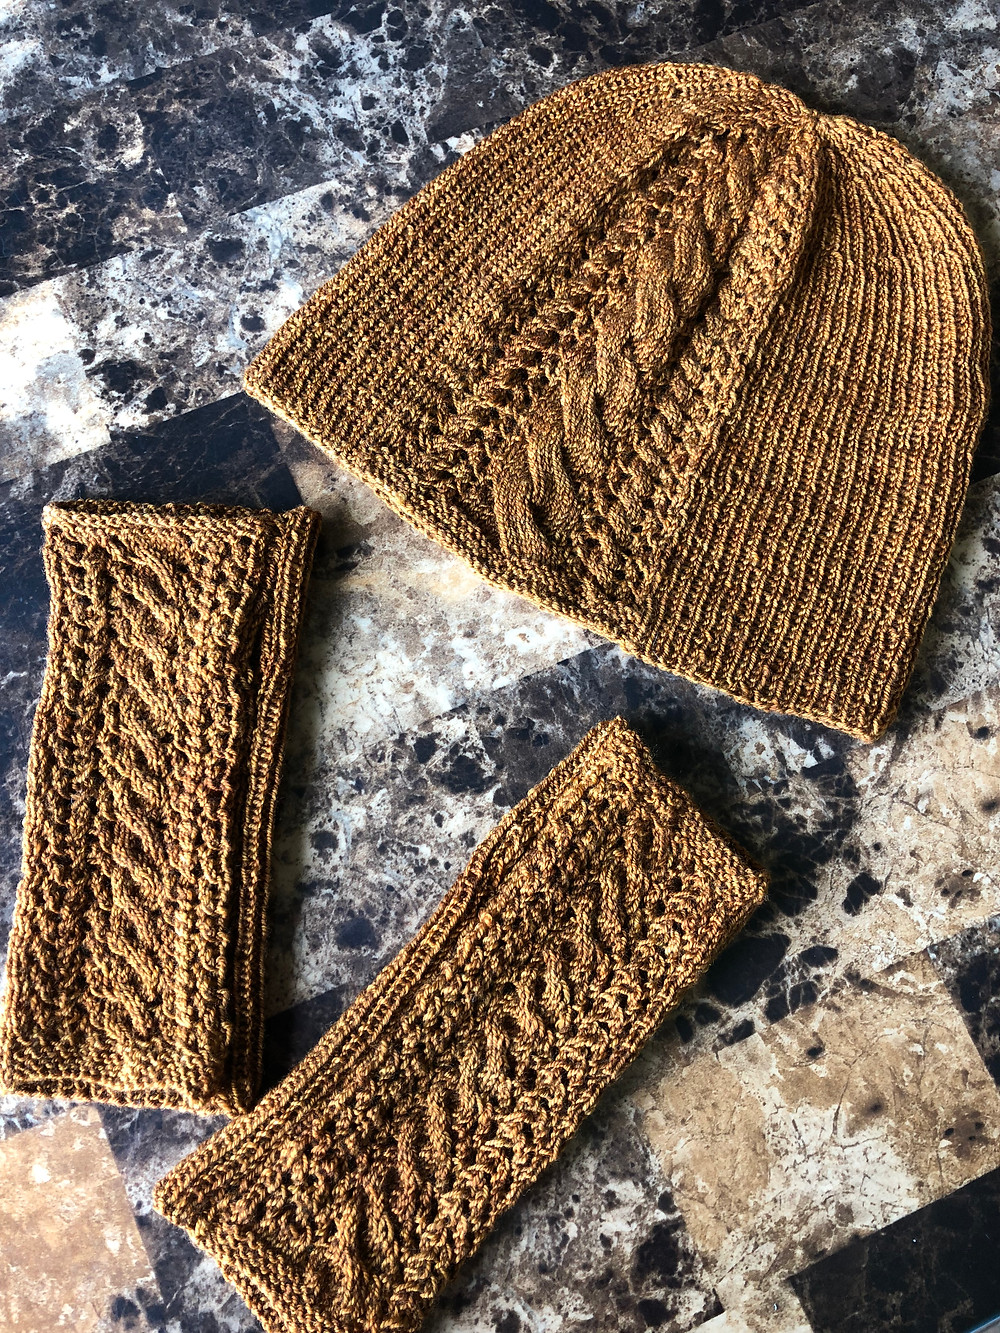 The Irish Pub Crawl Hat & Mitts are now available as a digital download through Ravelry!